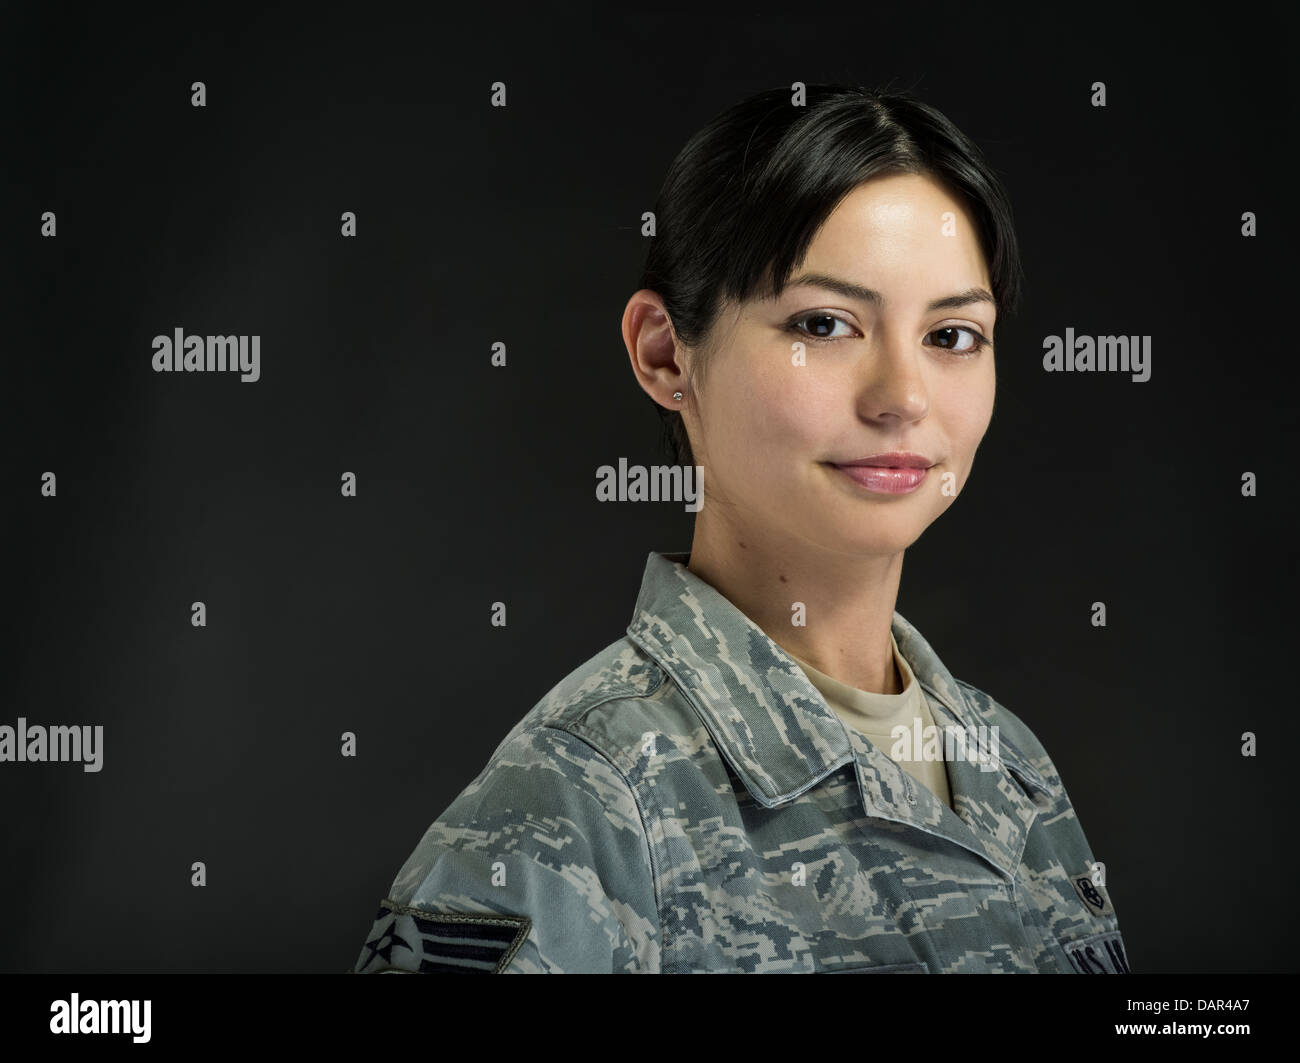 Portrait of Female United States Air Force Soldier in uniform - Stock Image